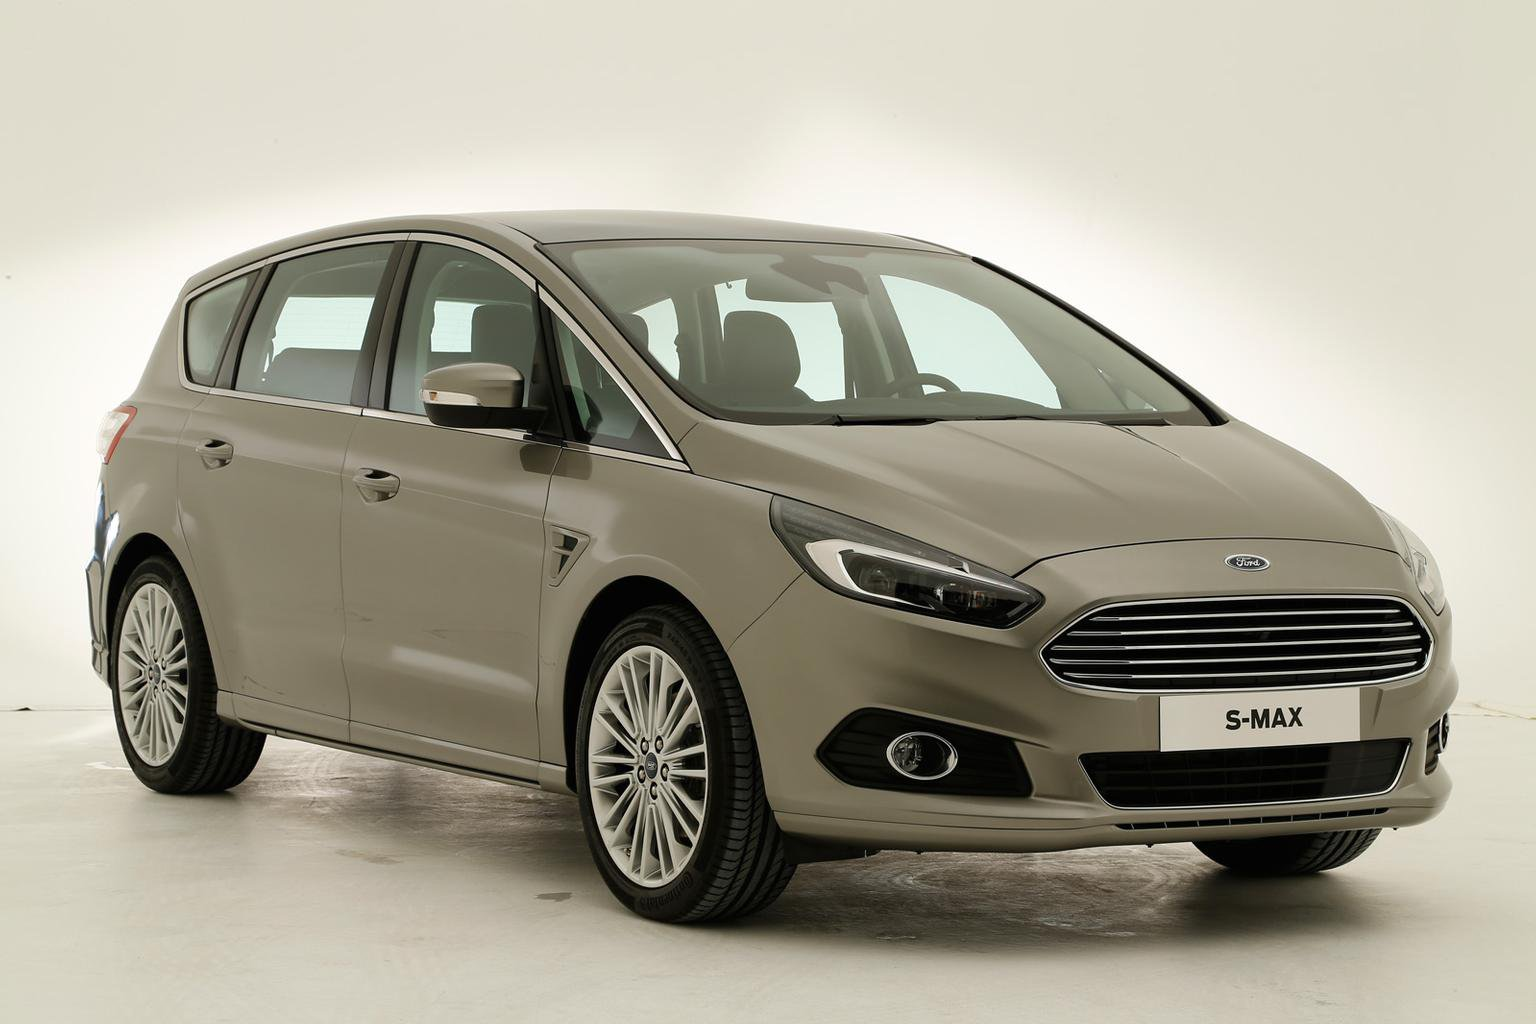 2015 Ford S-Max - full pricing, engines and specs